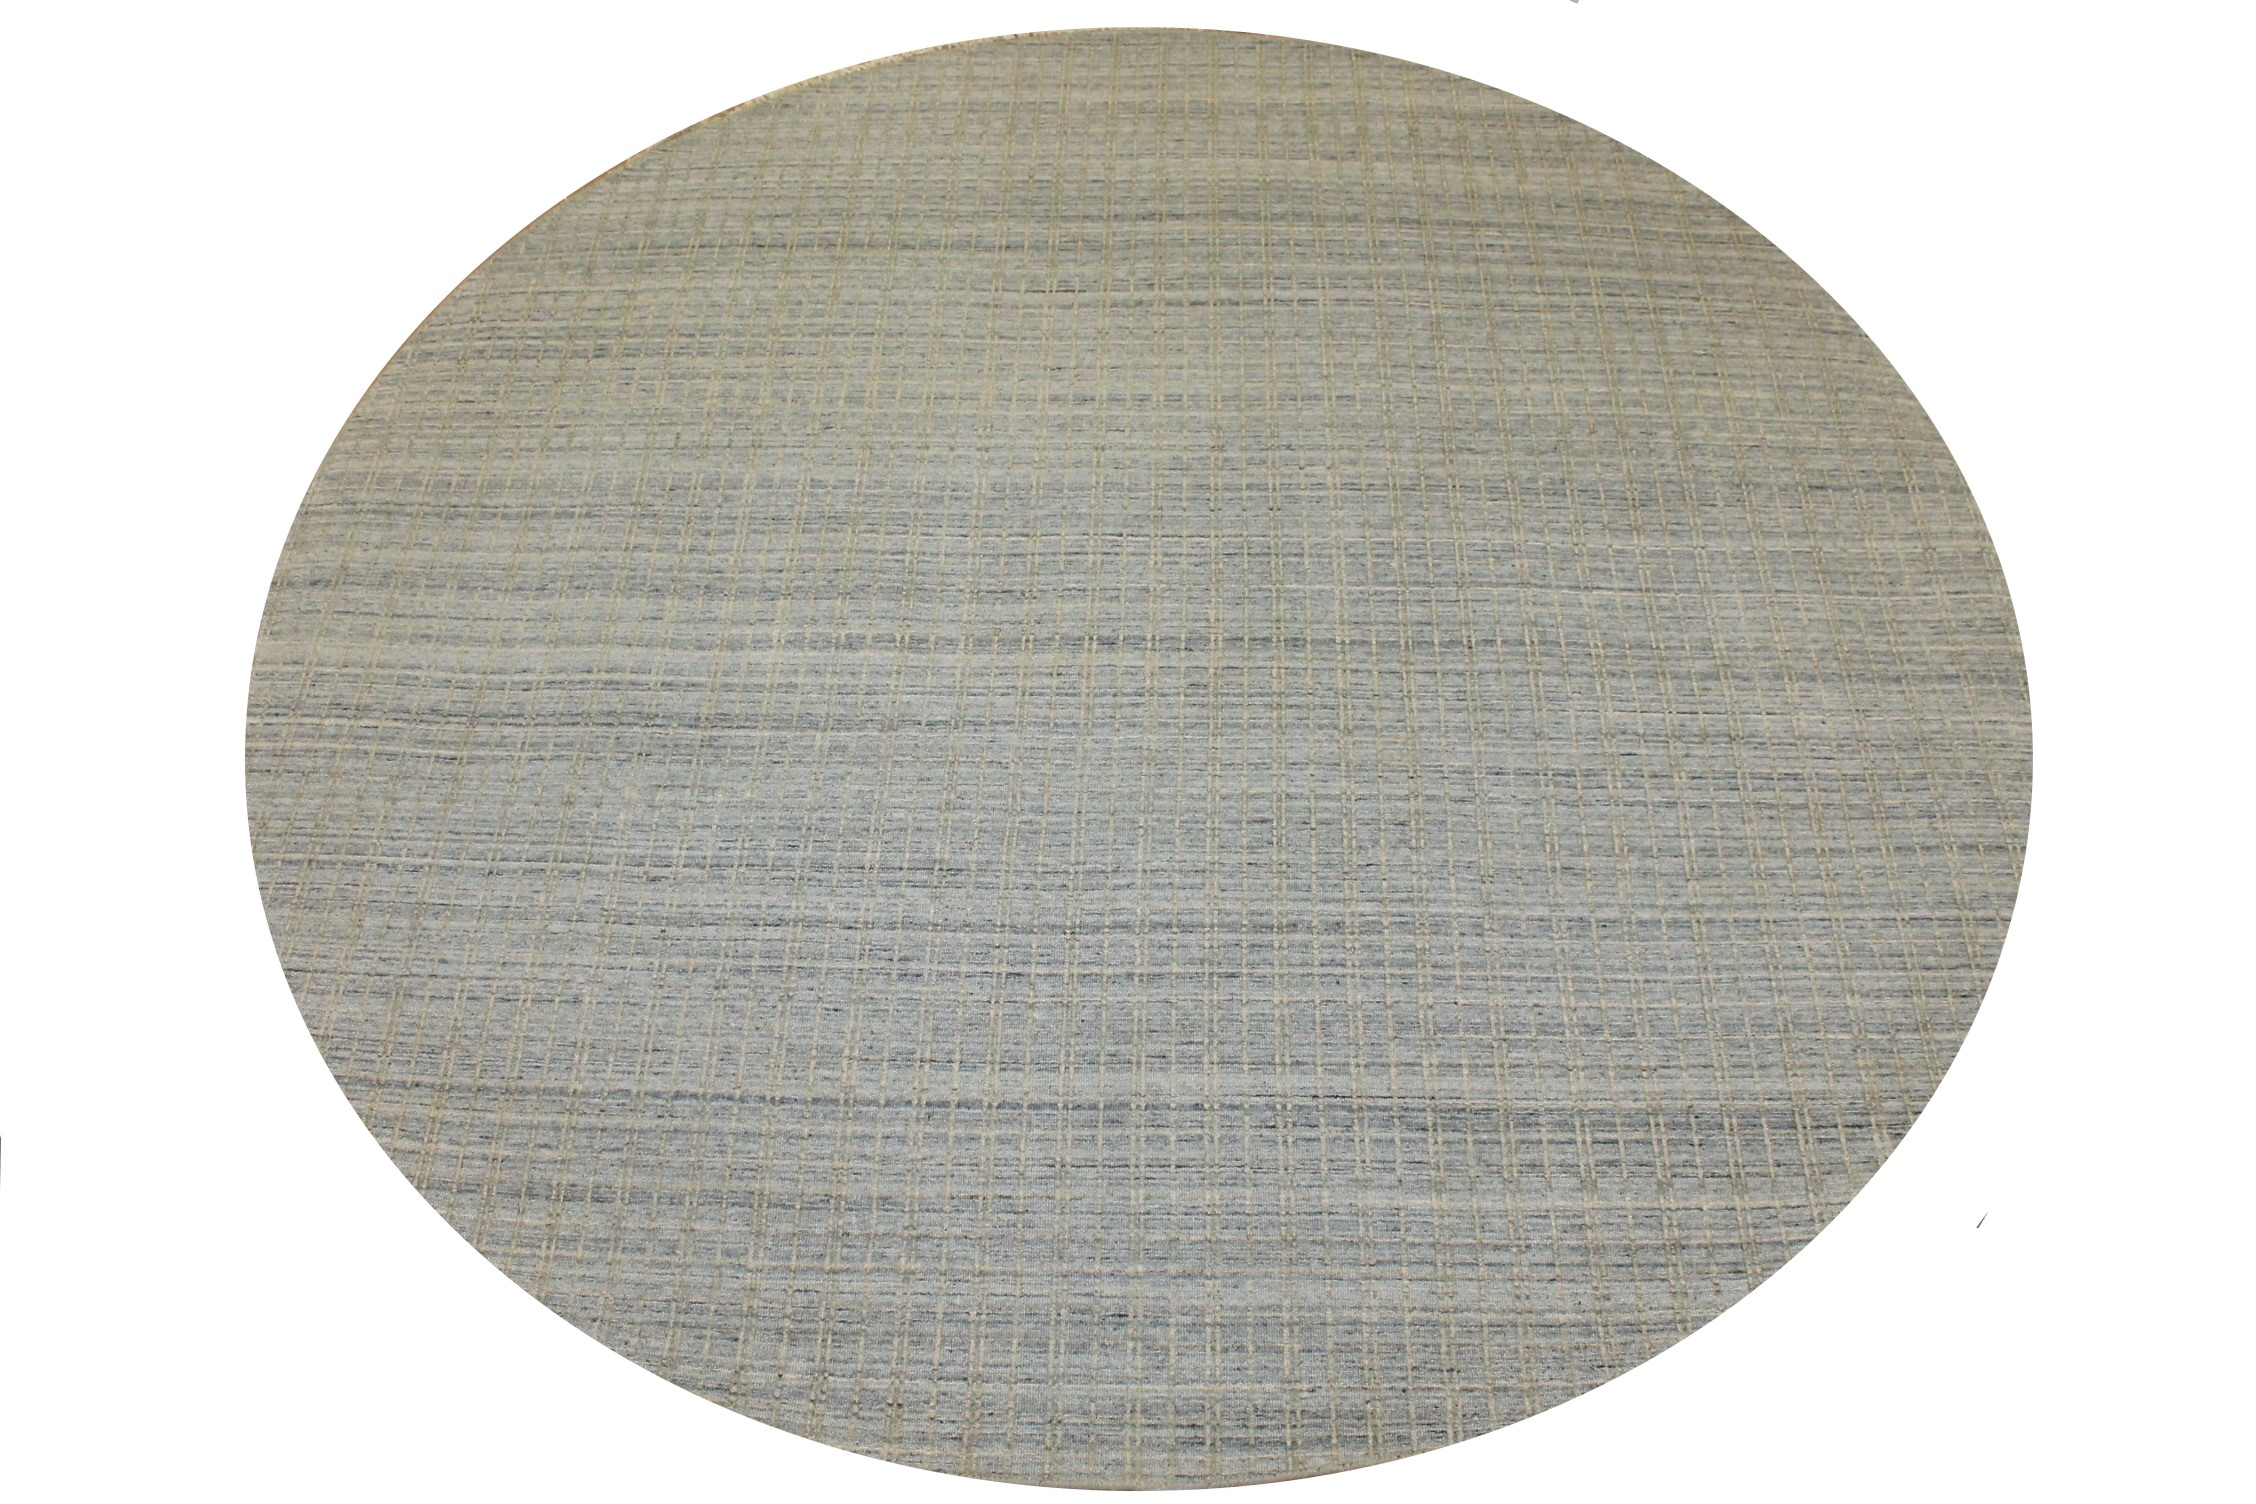 8 ft. Round & Square Casual Hand Knotted Wool Area Rug - MR025460